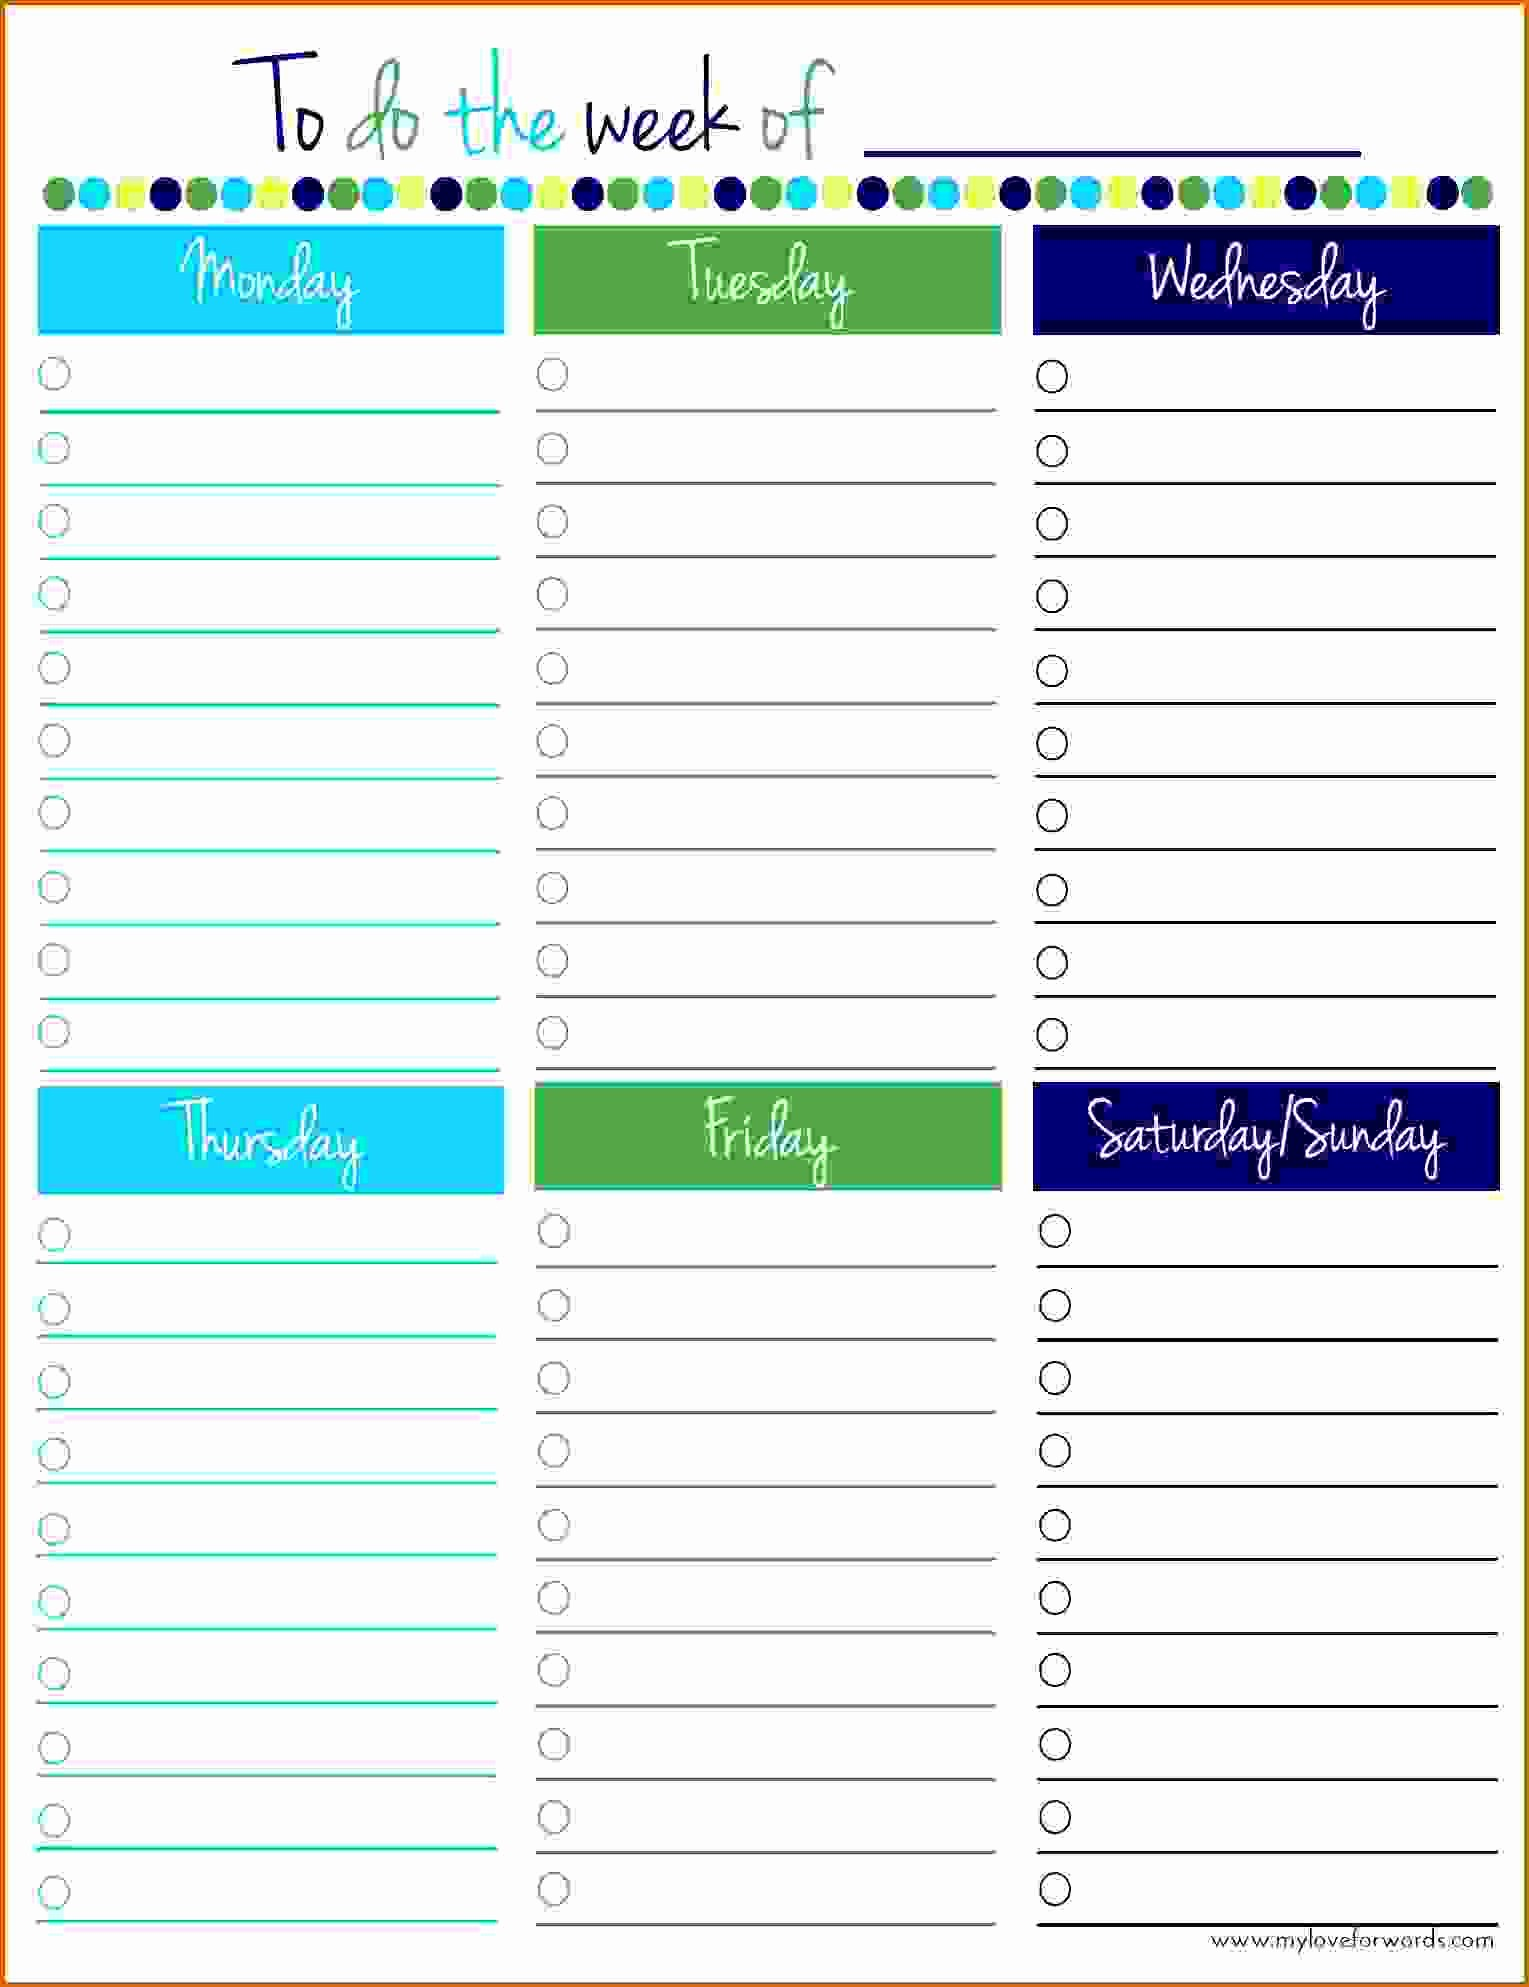 To Do List Weekly Template Fresh 10 Weekly Planner Template Monday to Friday